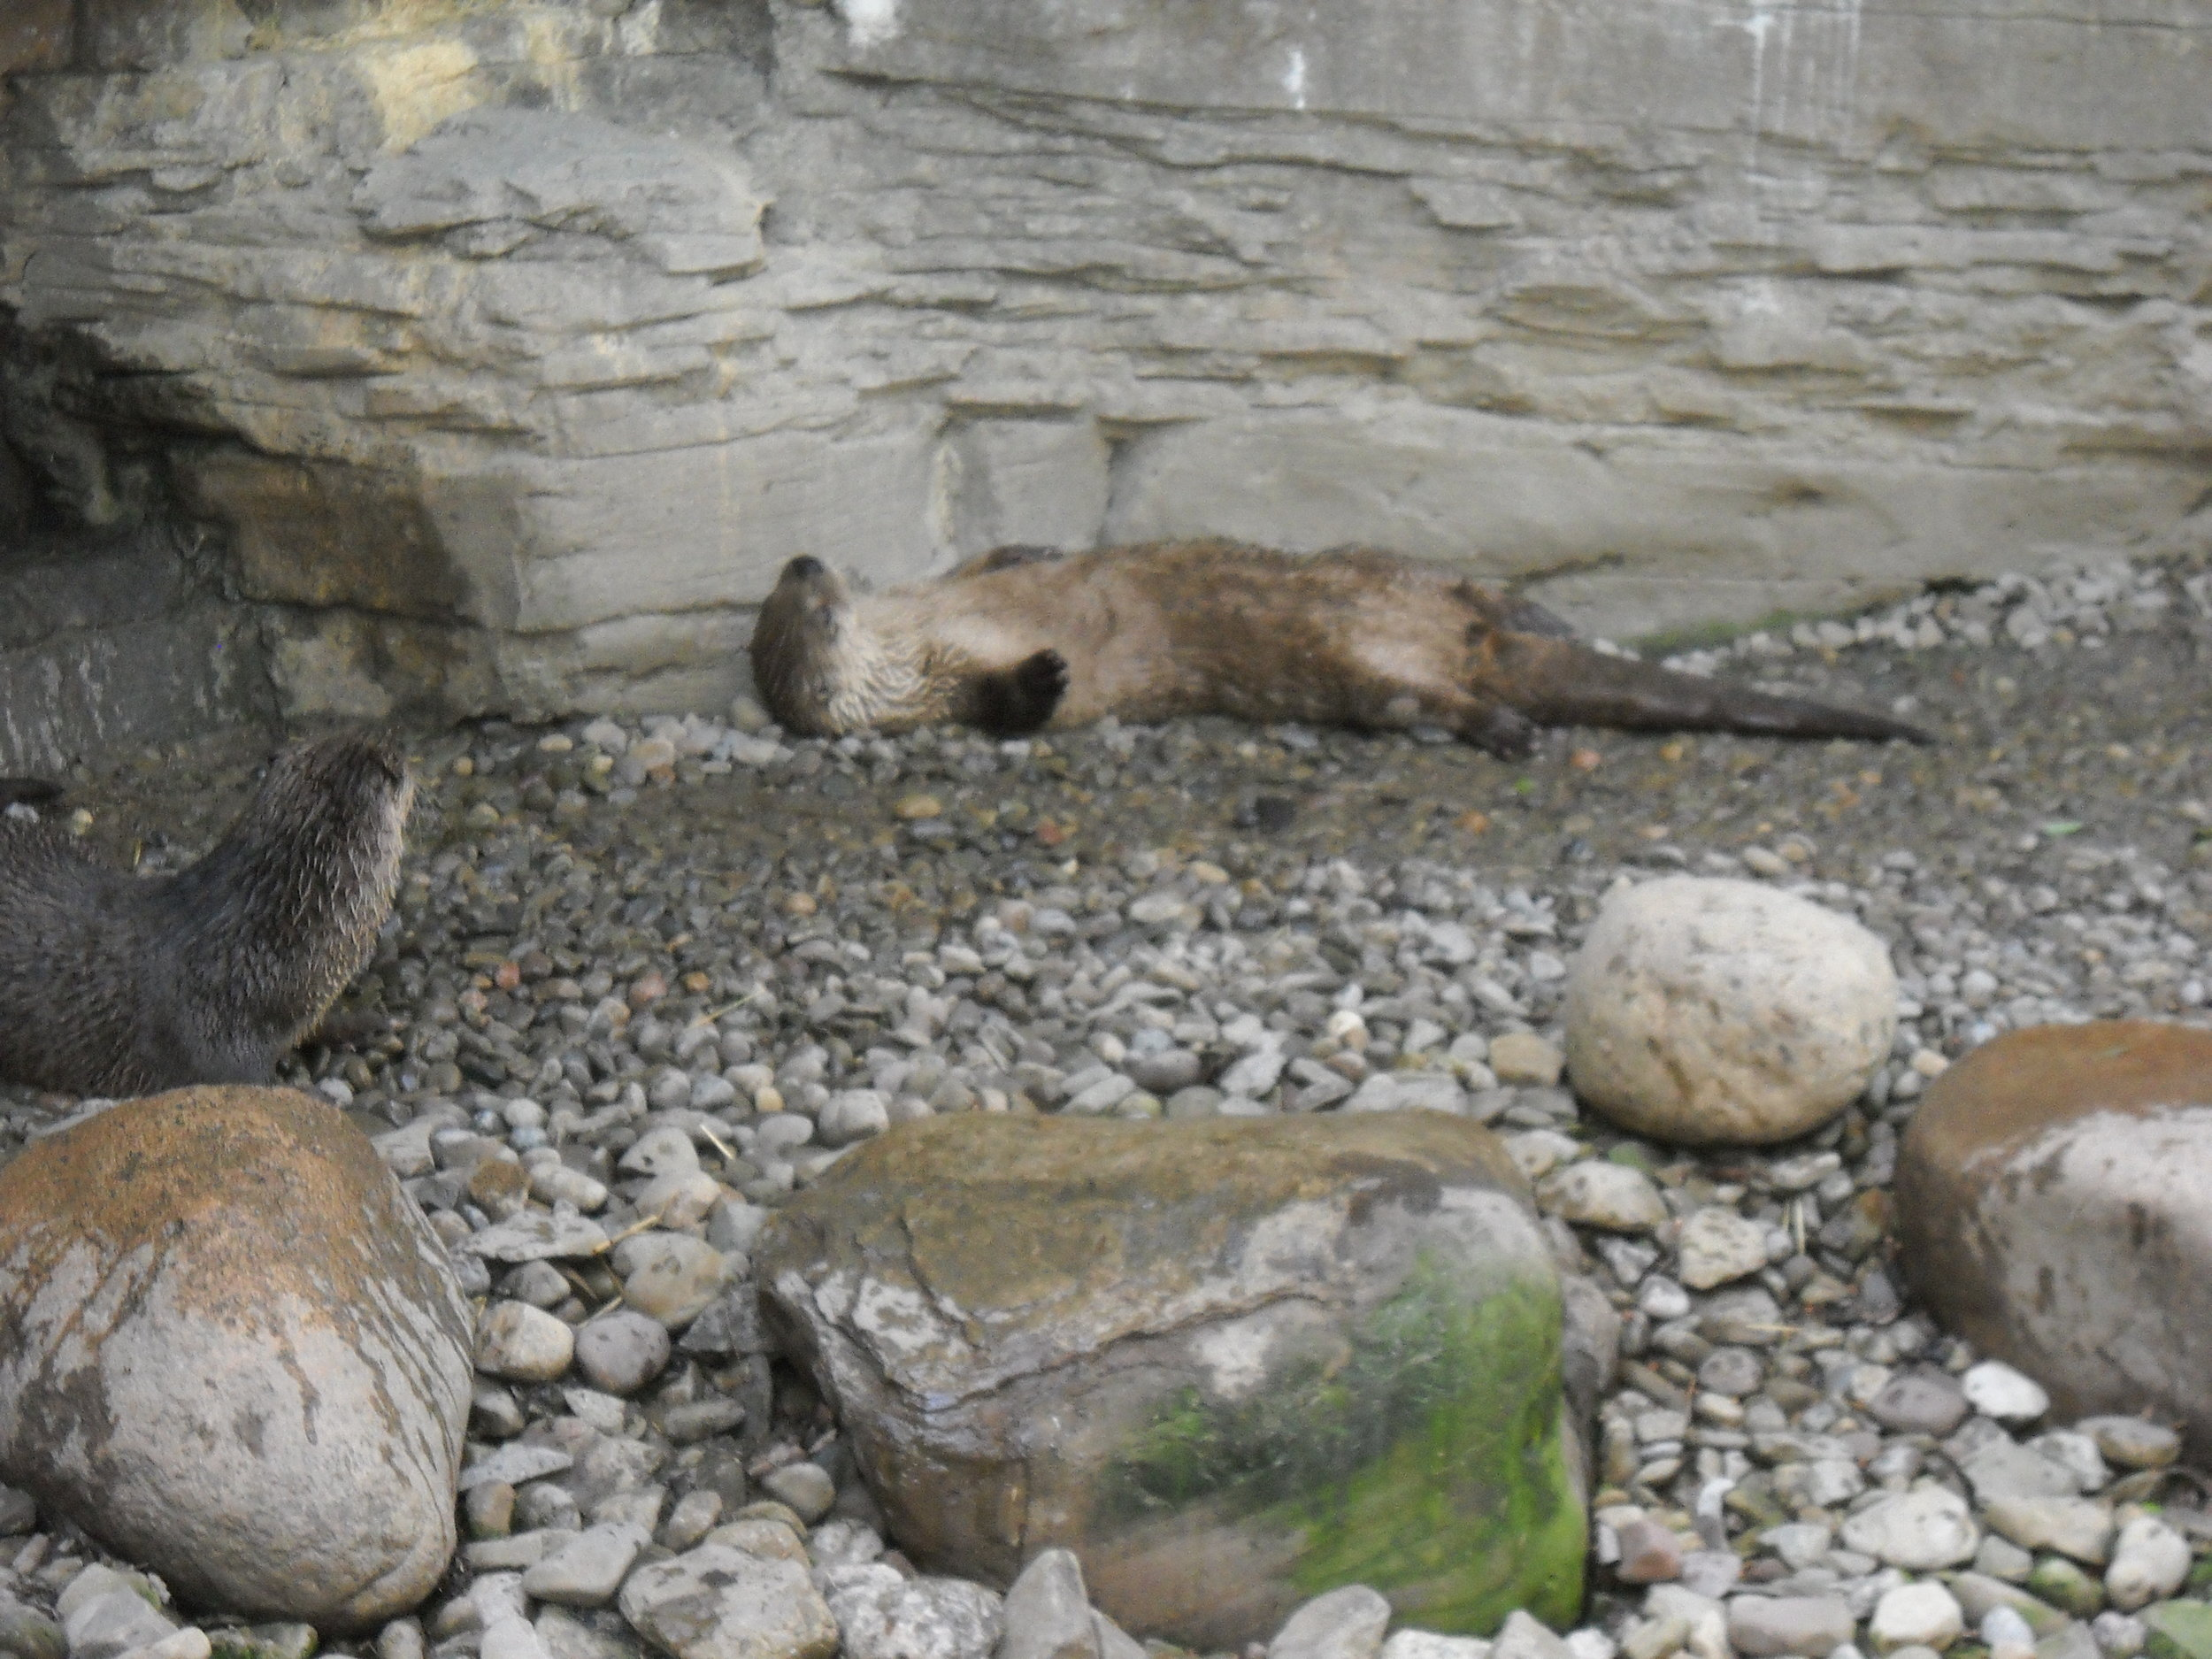 Otter Can Get Comfy on a Bed of Stones 2